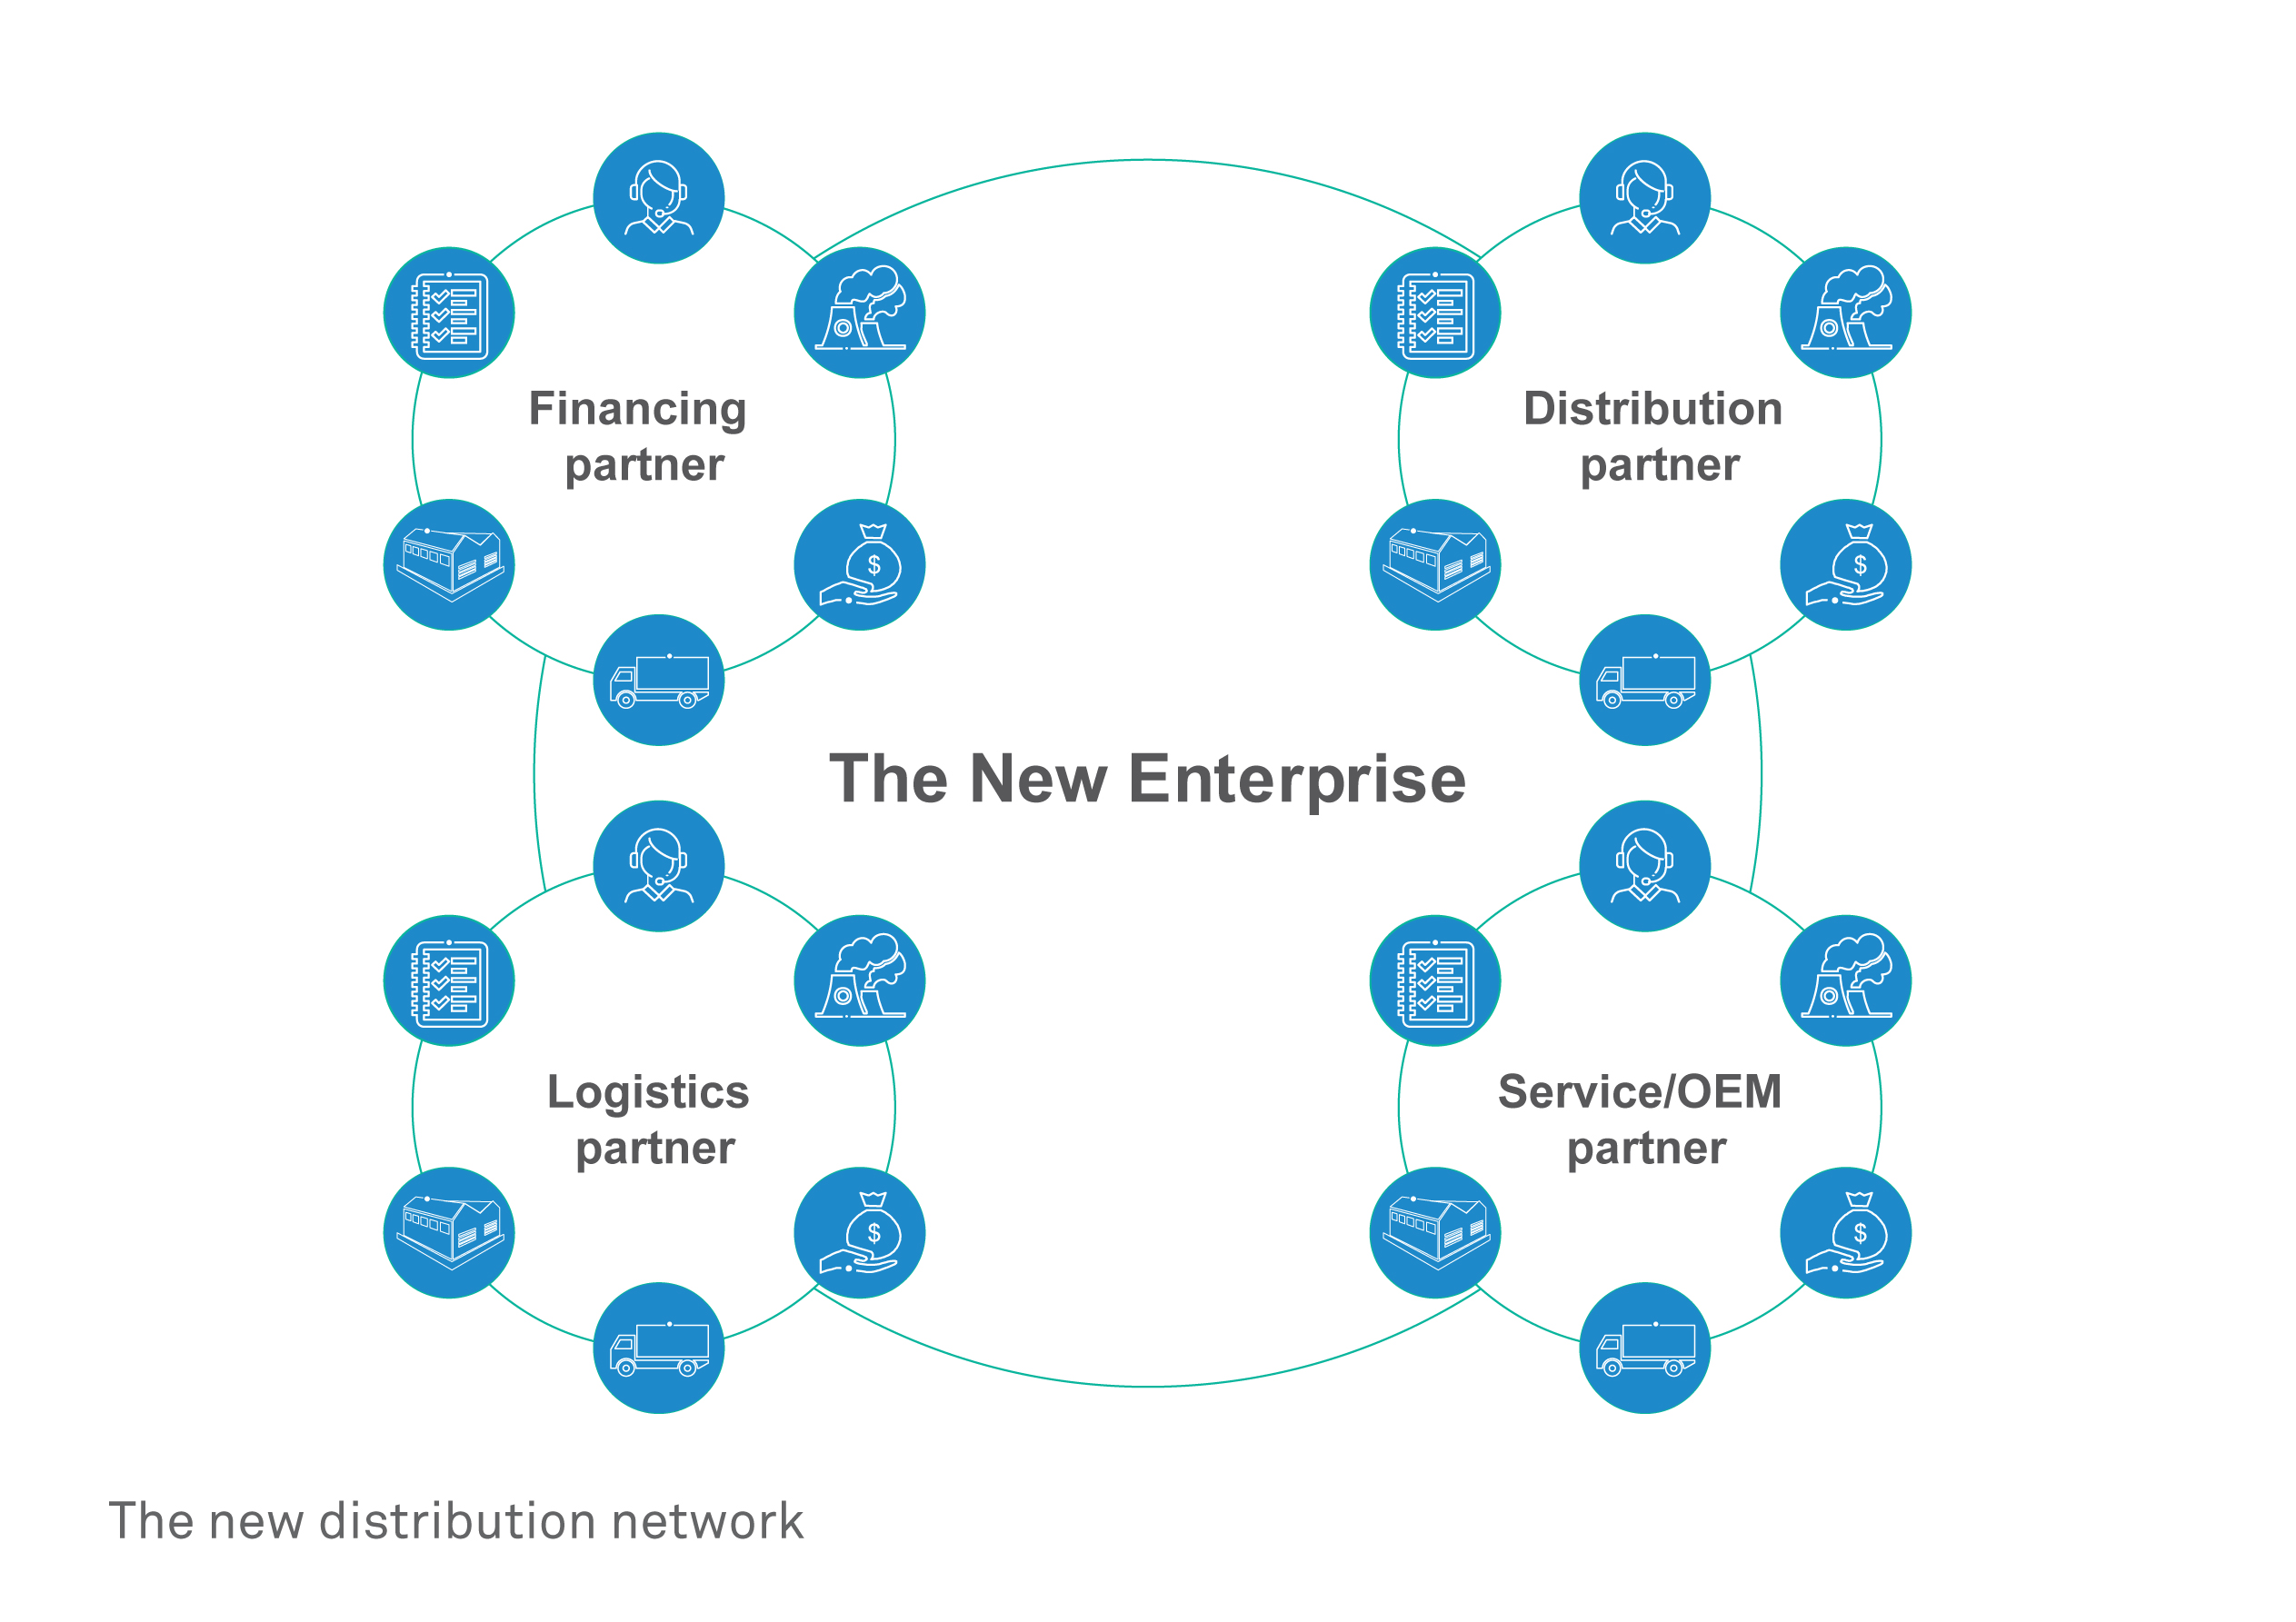 The Network is the new Enterprise